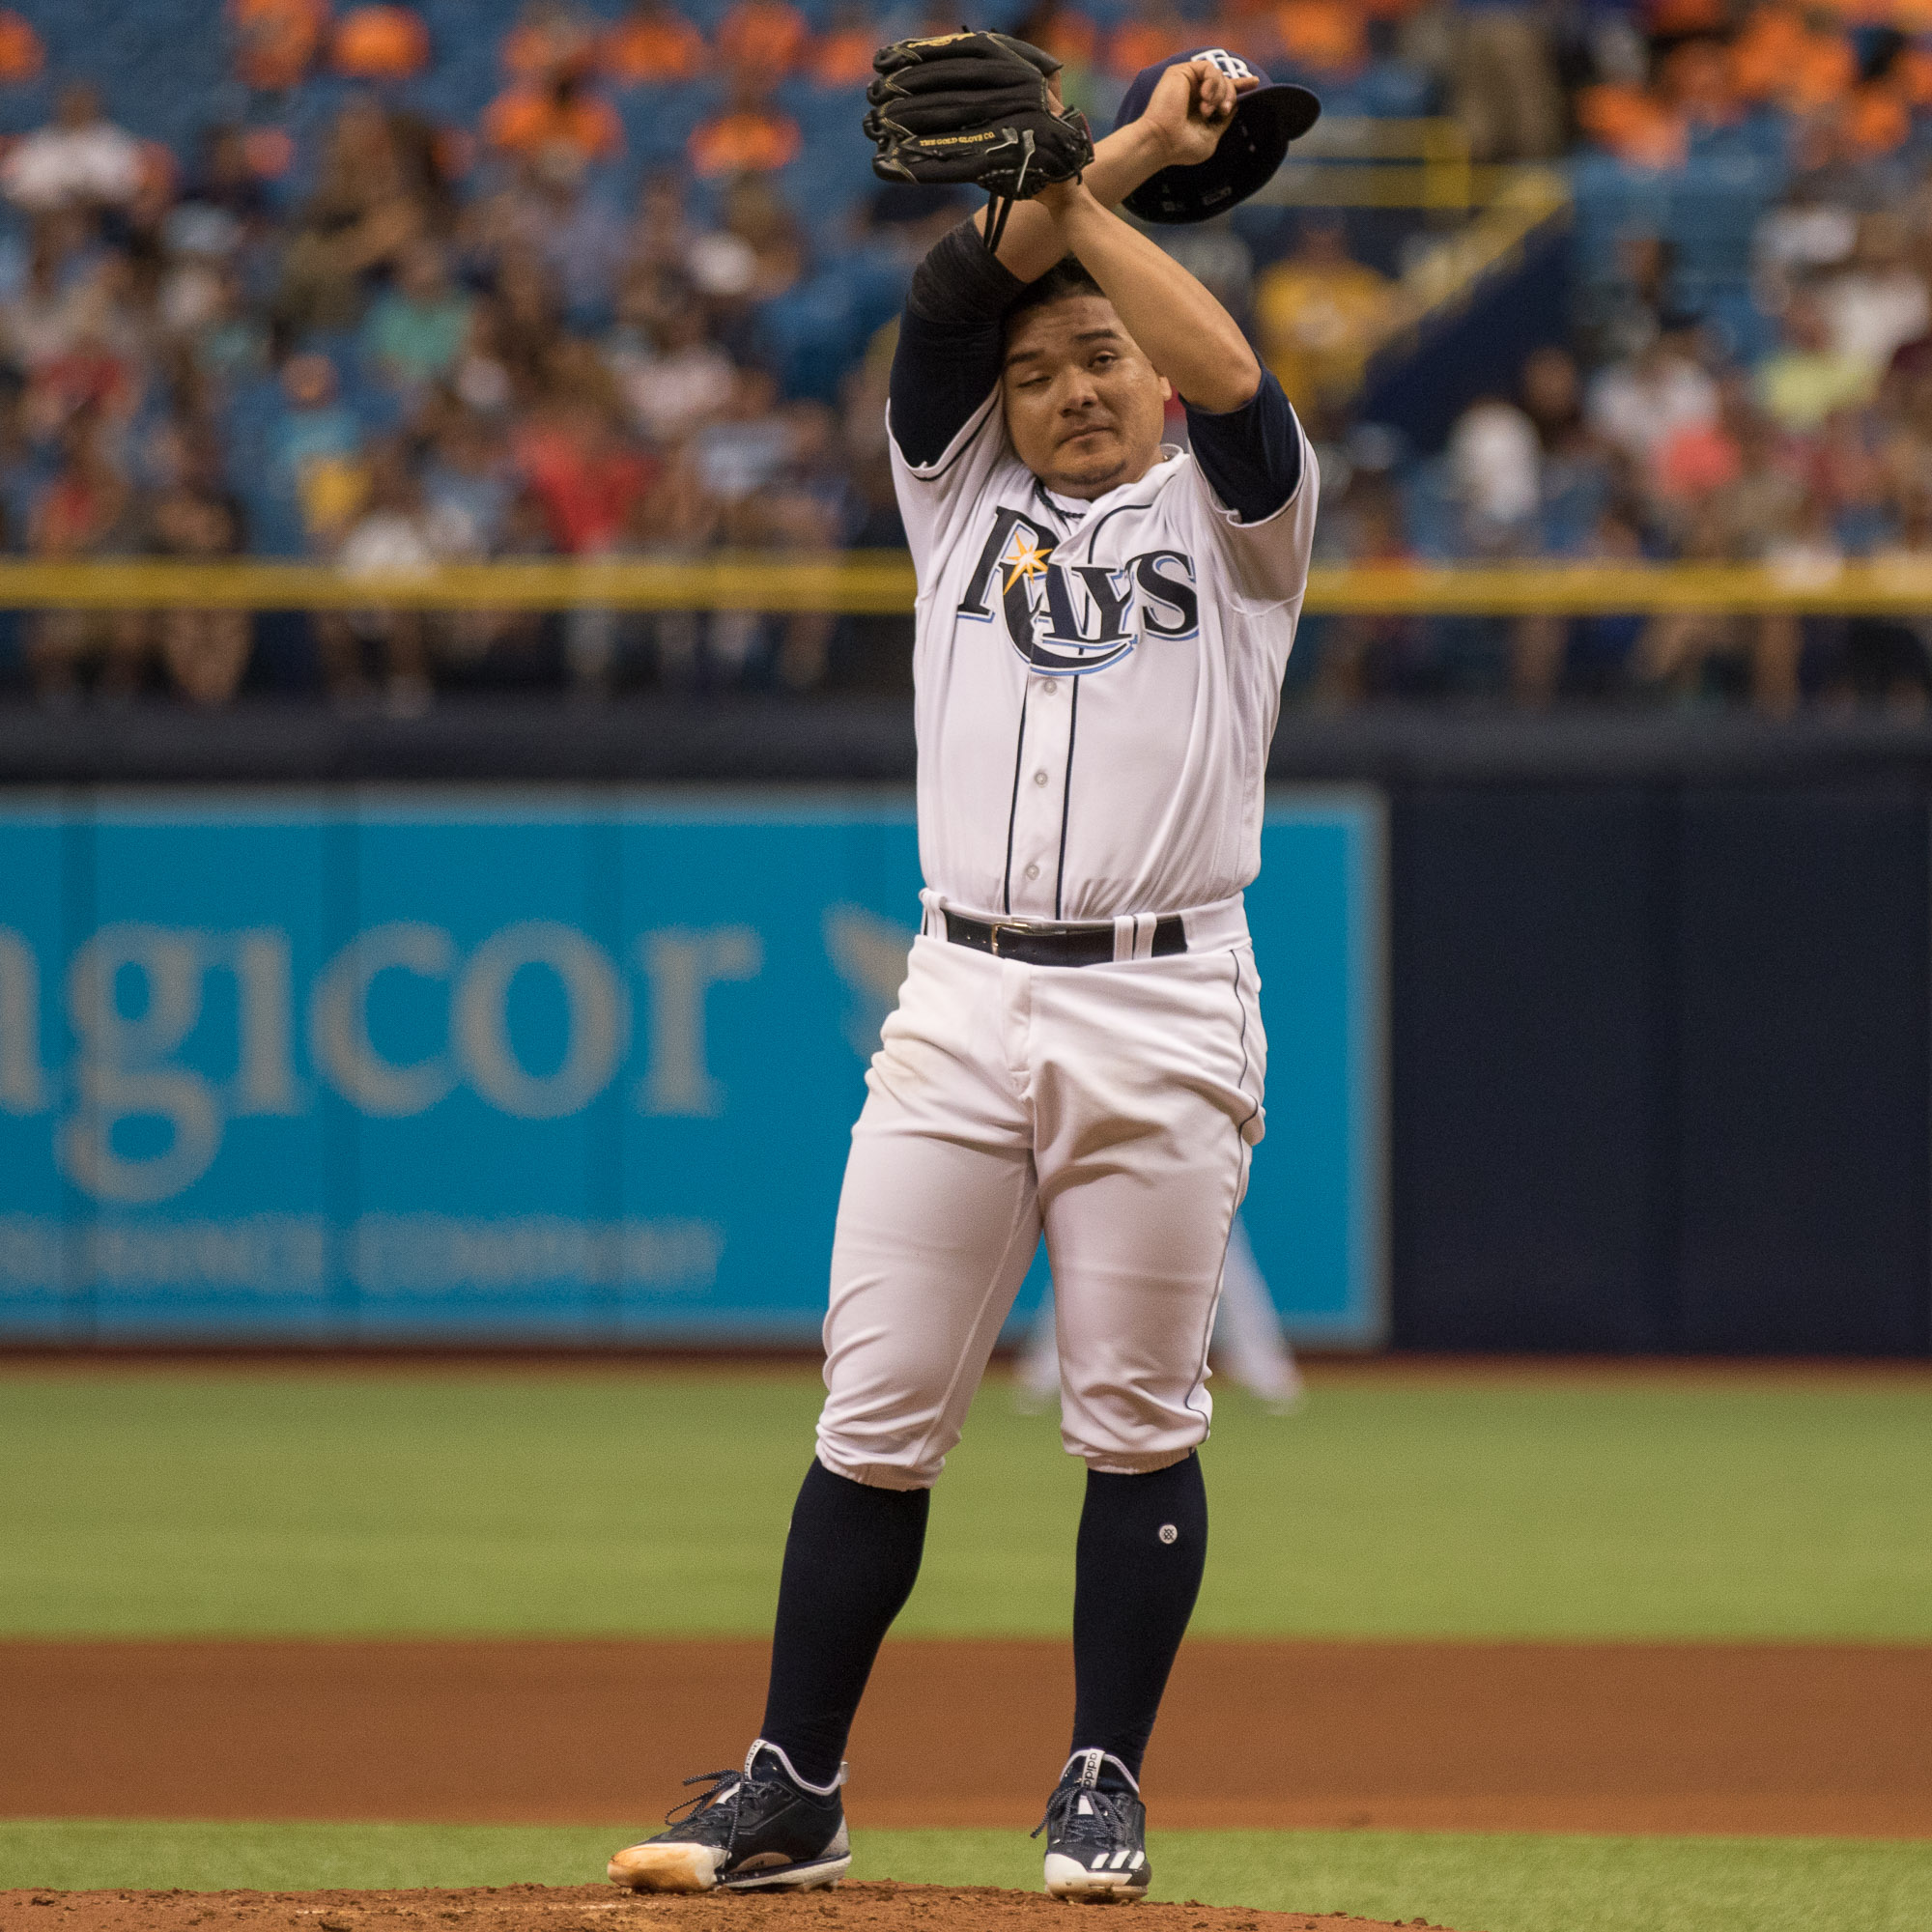 Erasmo Ramirez had his best start in a while for the Rays../STEVEN MUNCIE